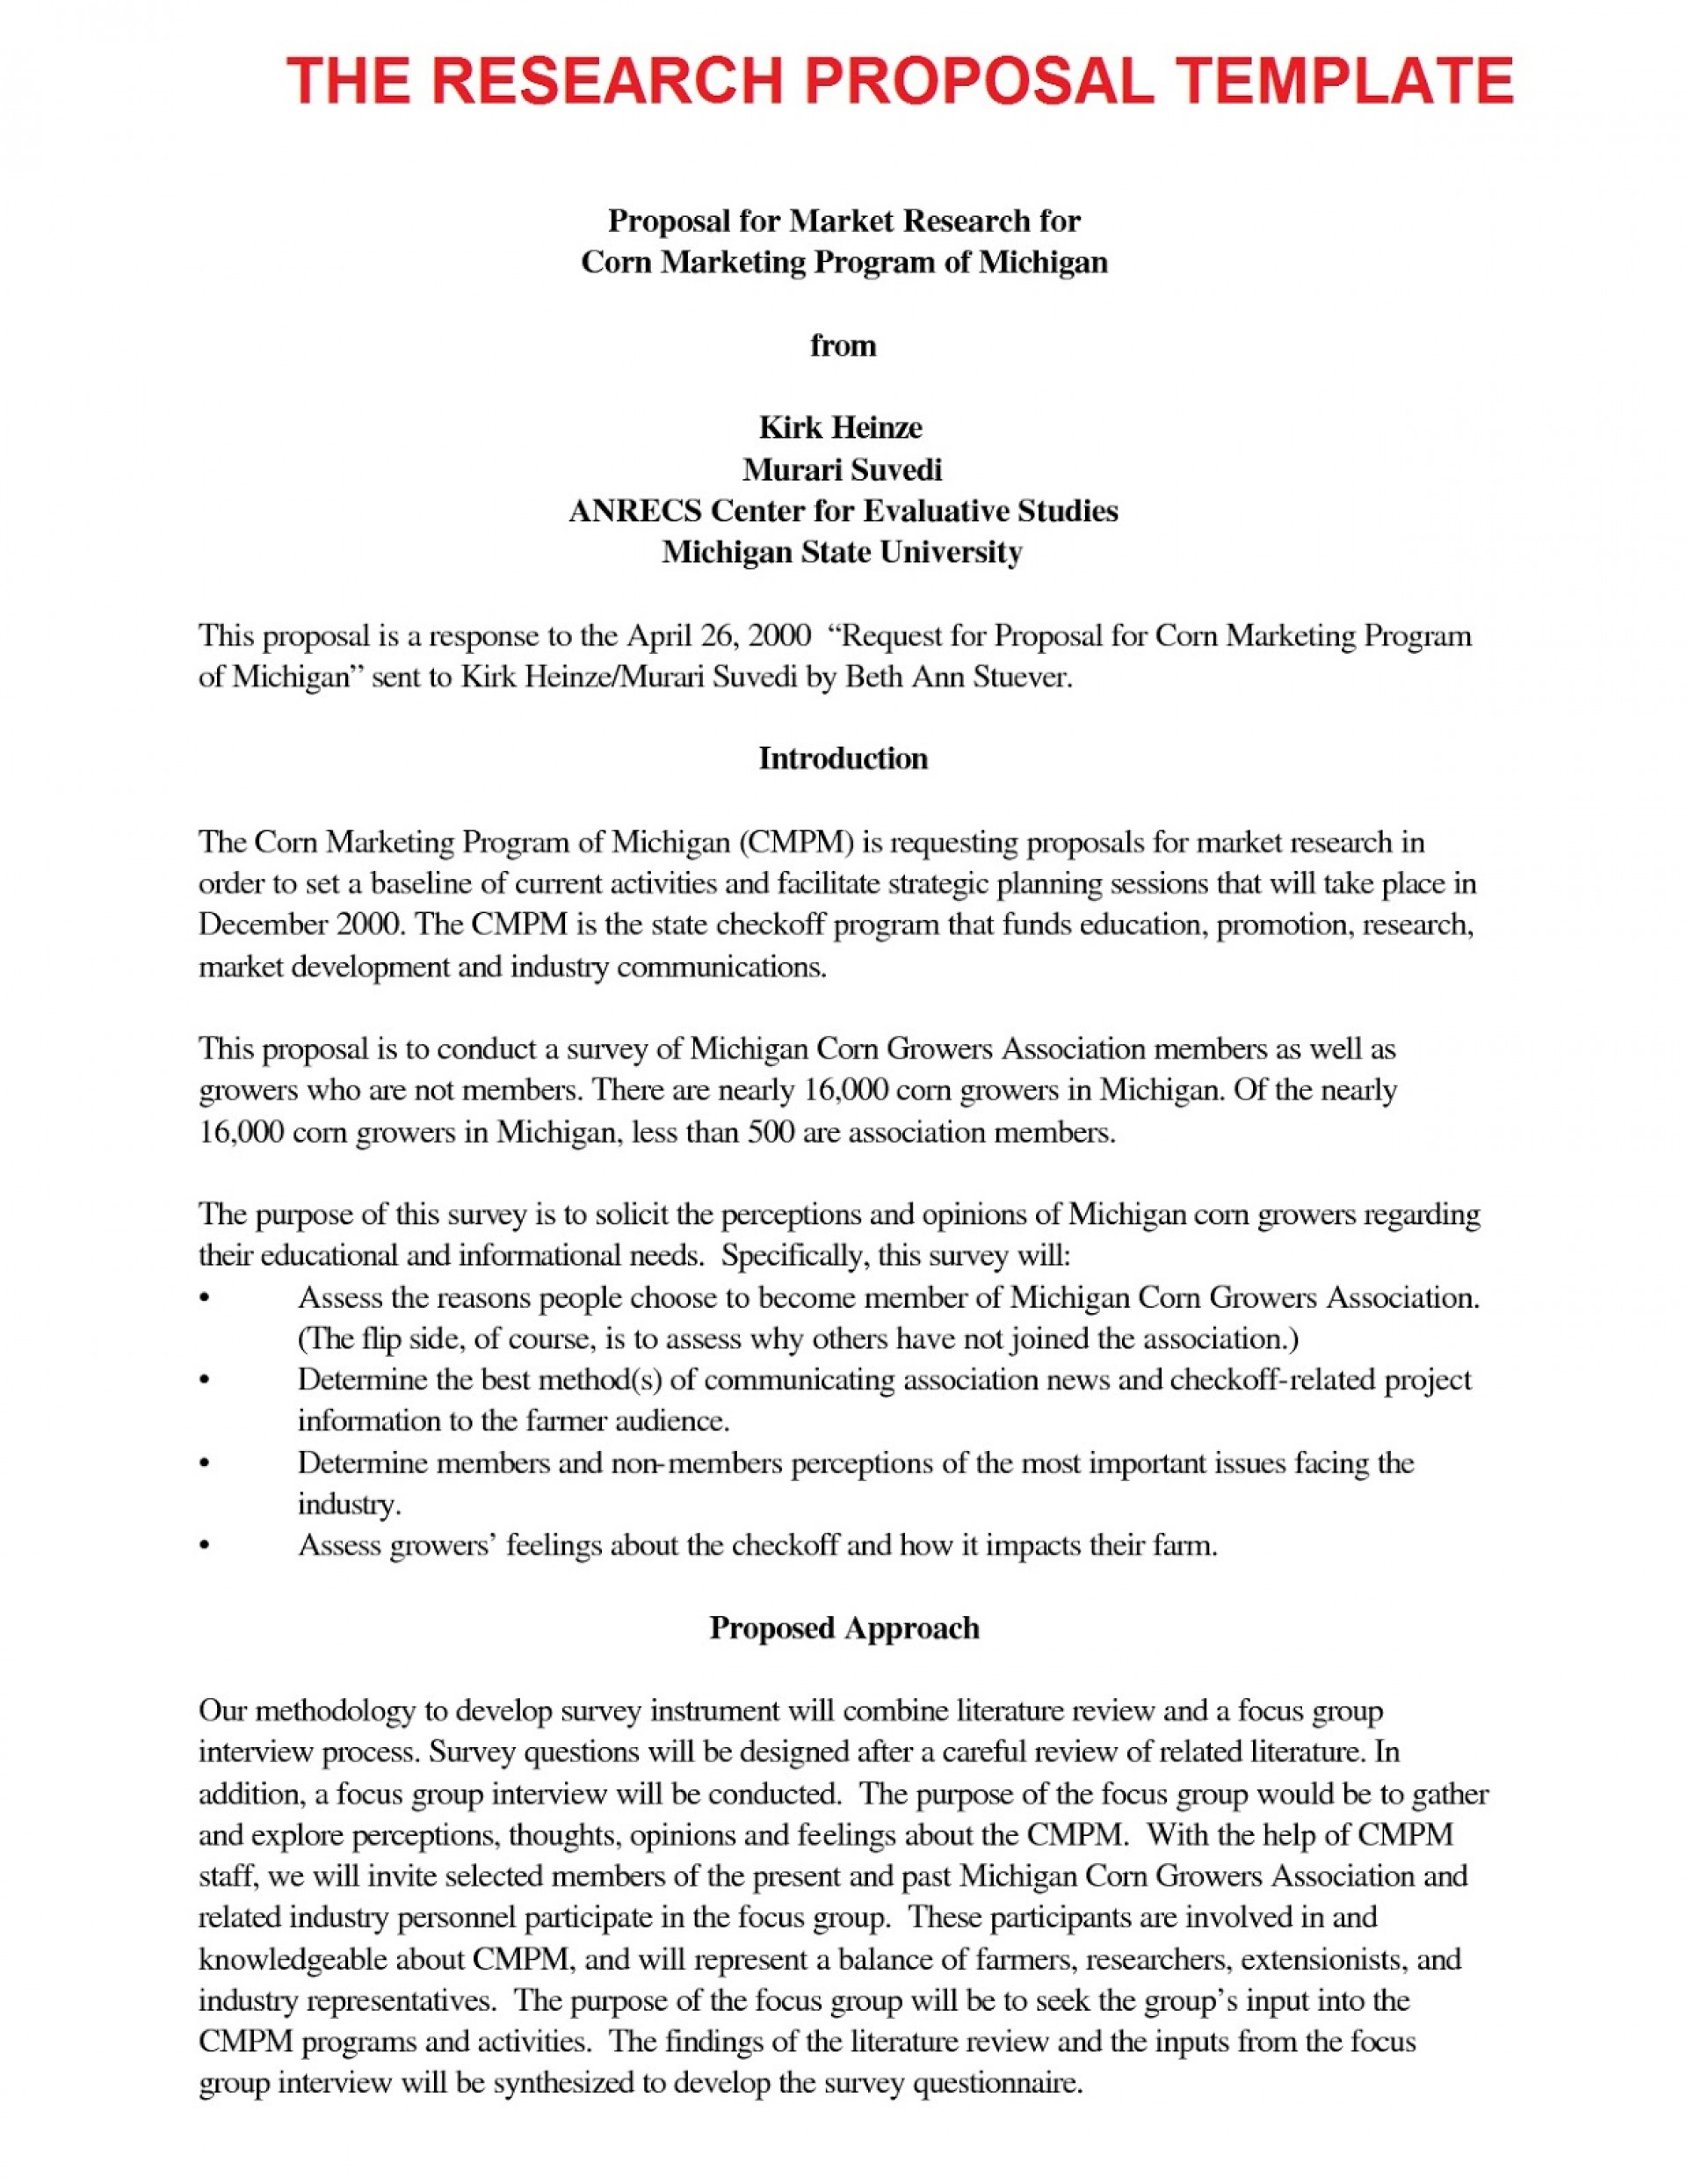 015 How To Write Research Paper Proposal Sample Amazing A Template In Apa Format 1920